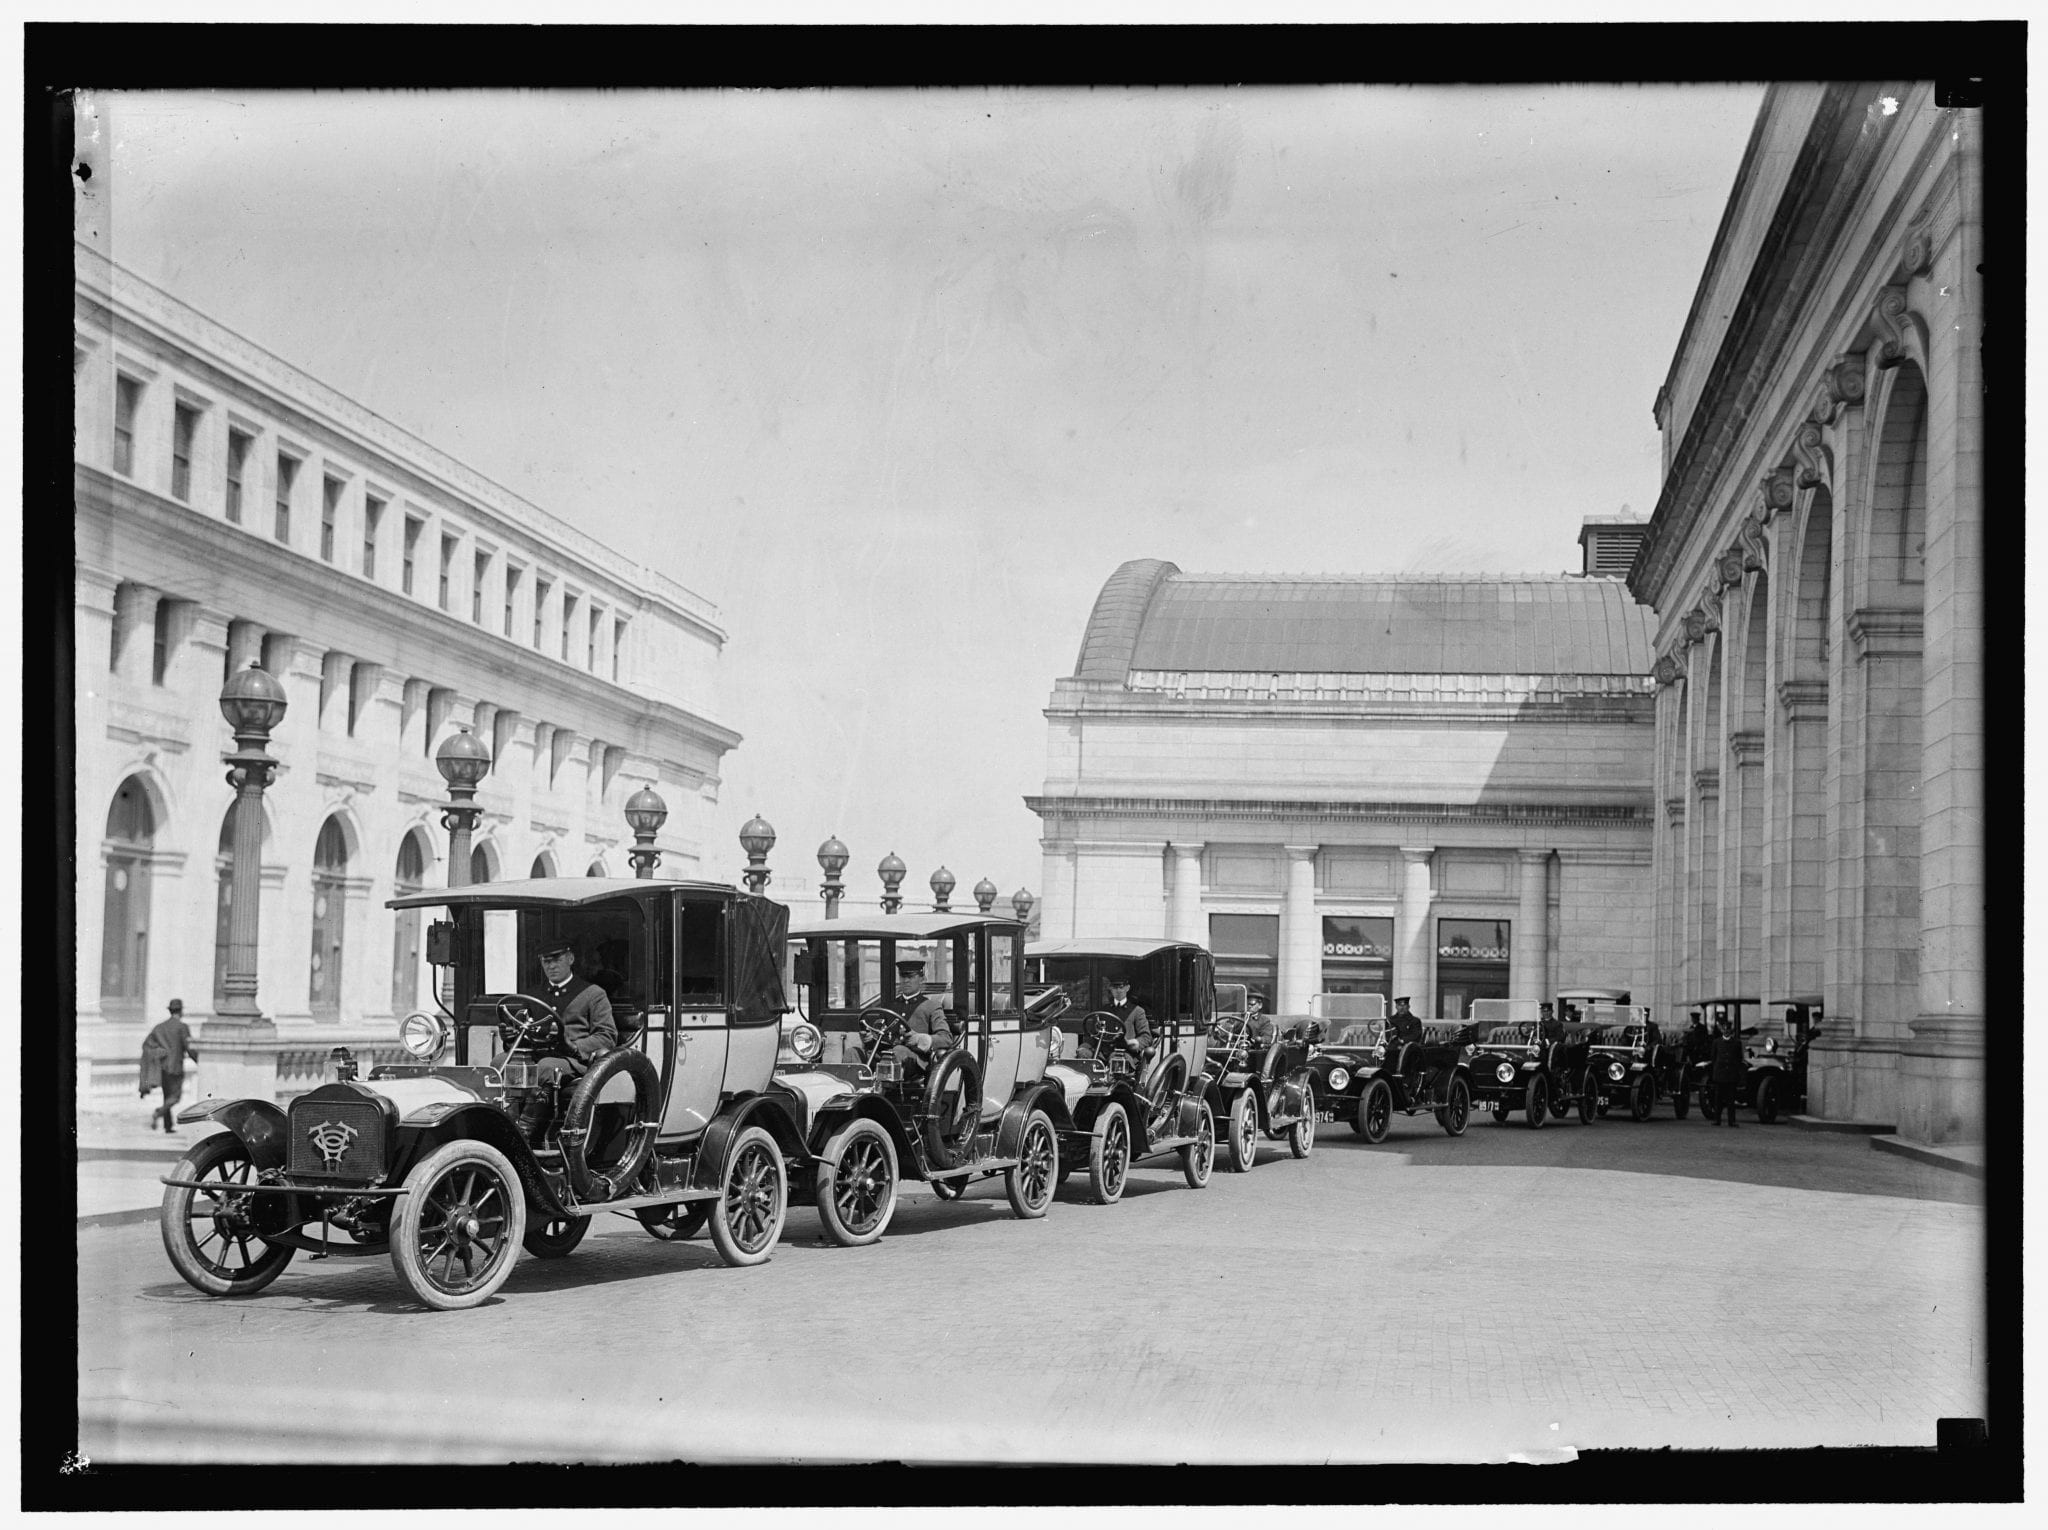 Union Station Taxis Before Uber